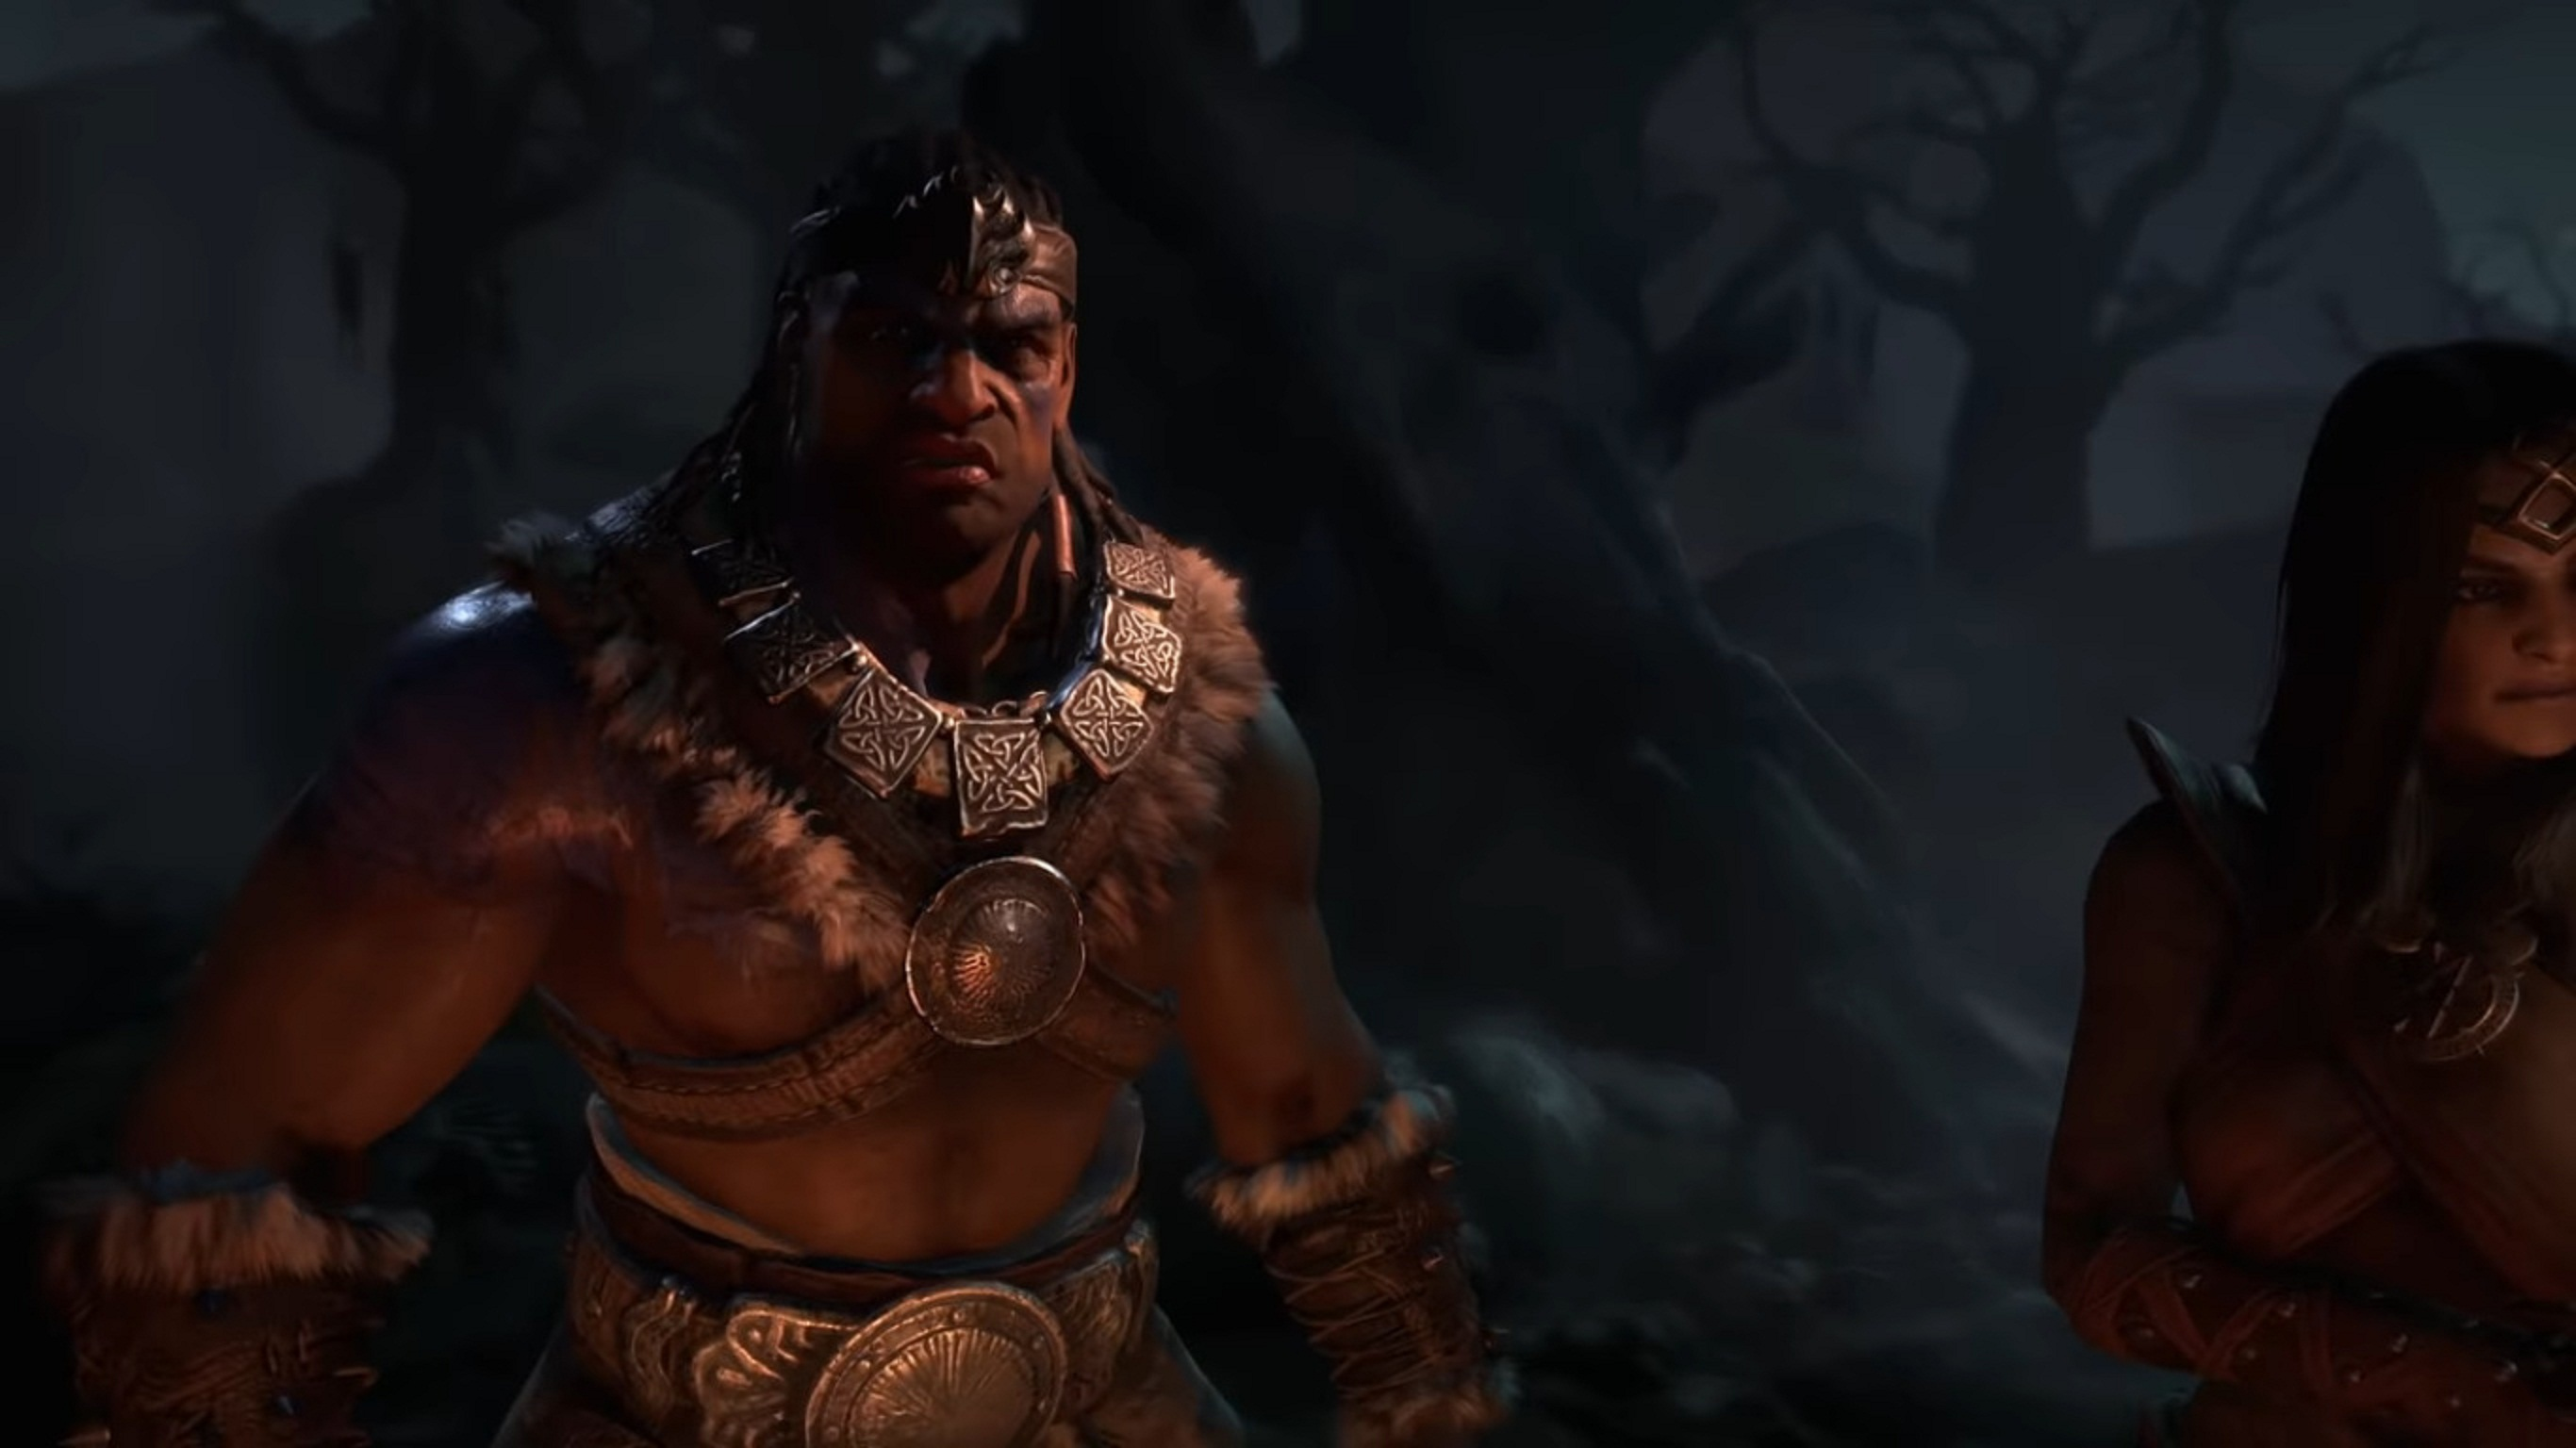 Diablo 4's Developers Highlight Multiplayer And Item Progression In Recent Developer Blog